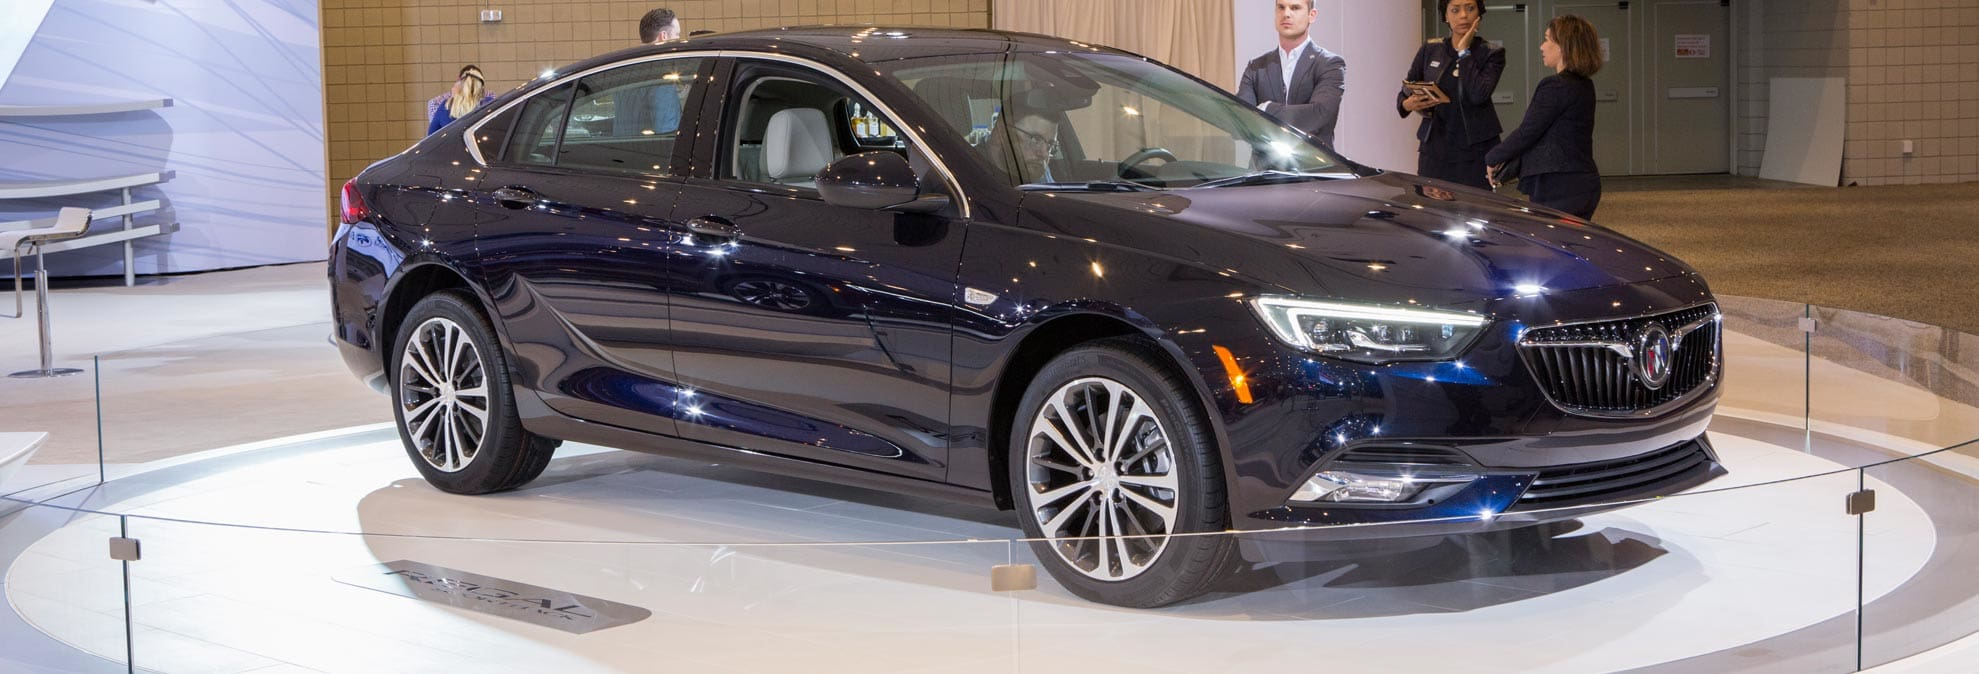 Preview: 2018 Buick Regal Sportback - Consumer Reports